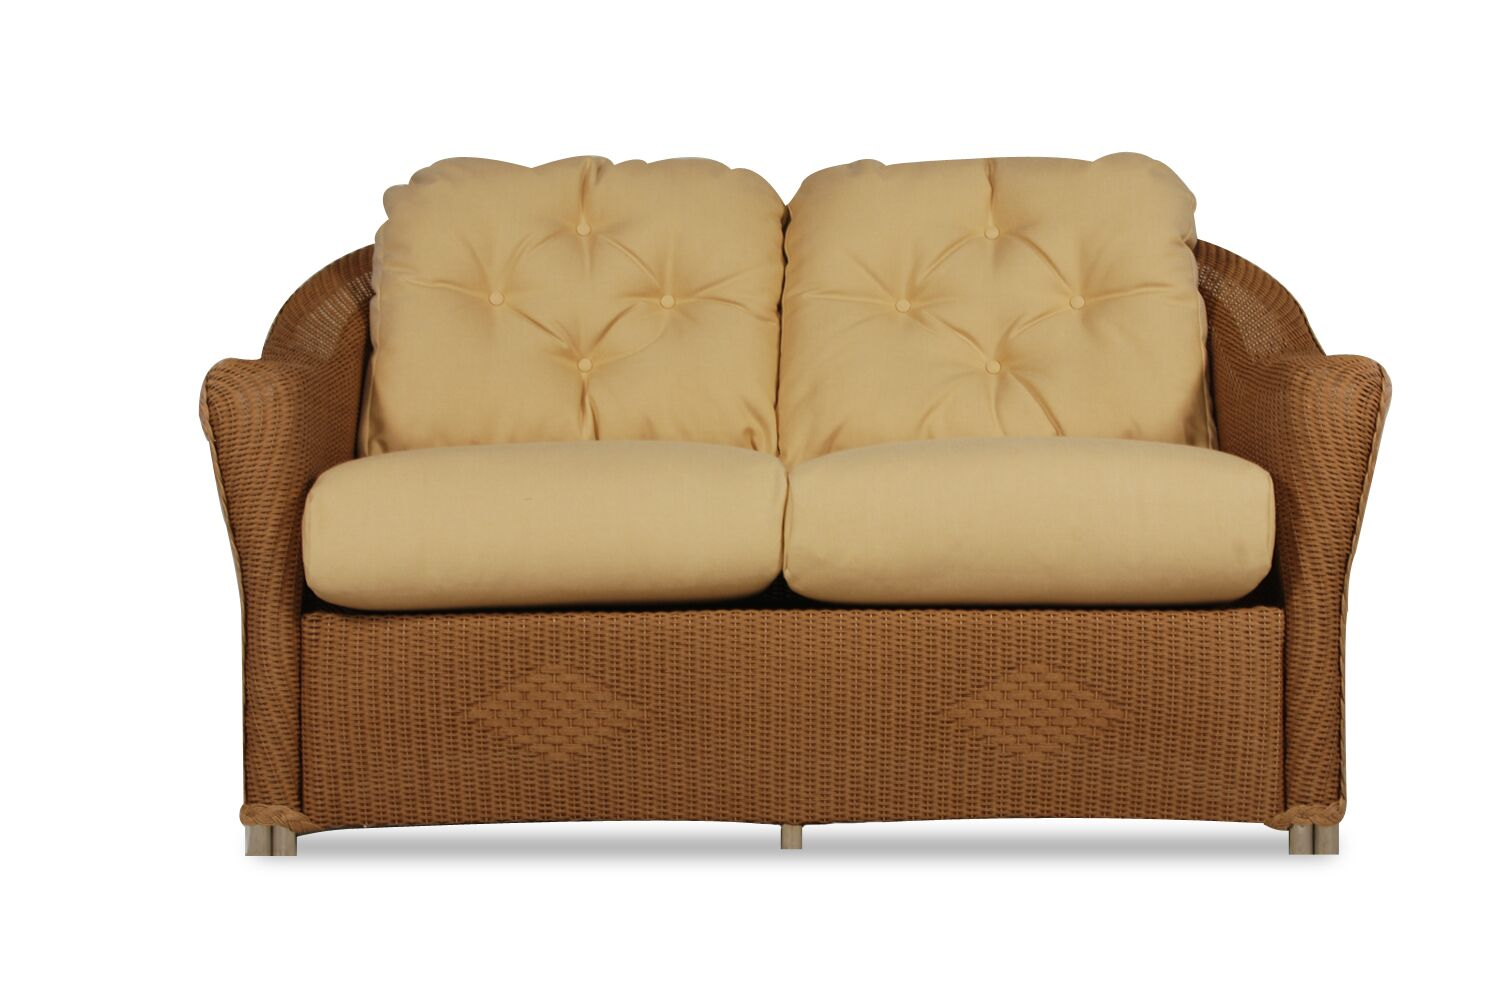 Reflections Loveseat with Cushions